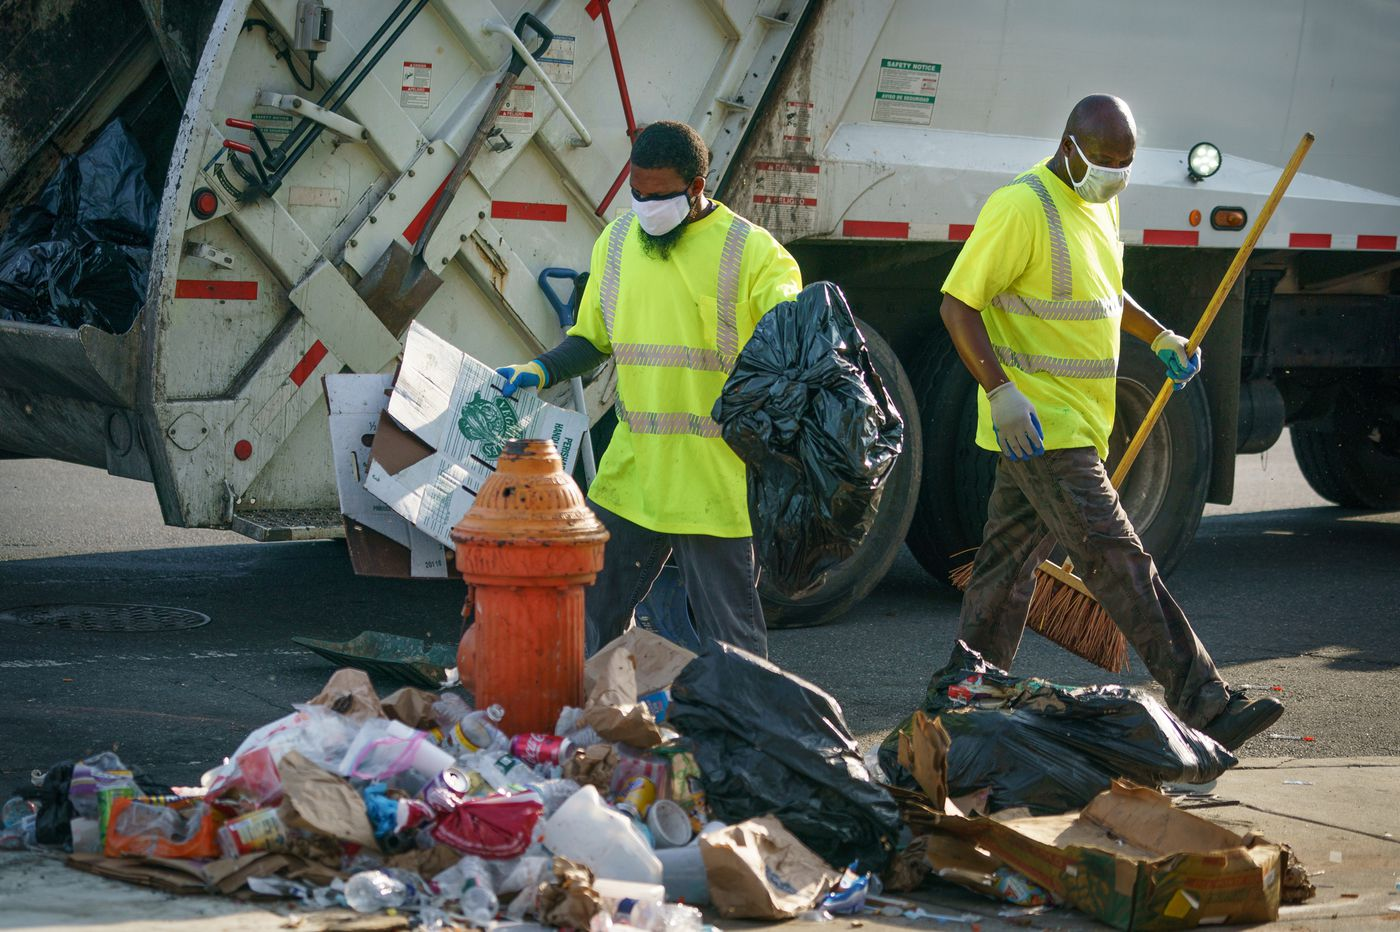 Philly's trash pickup woes are now delaying street repairs as recycling remains significantly behind